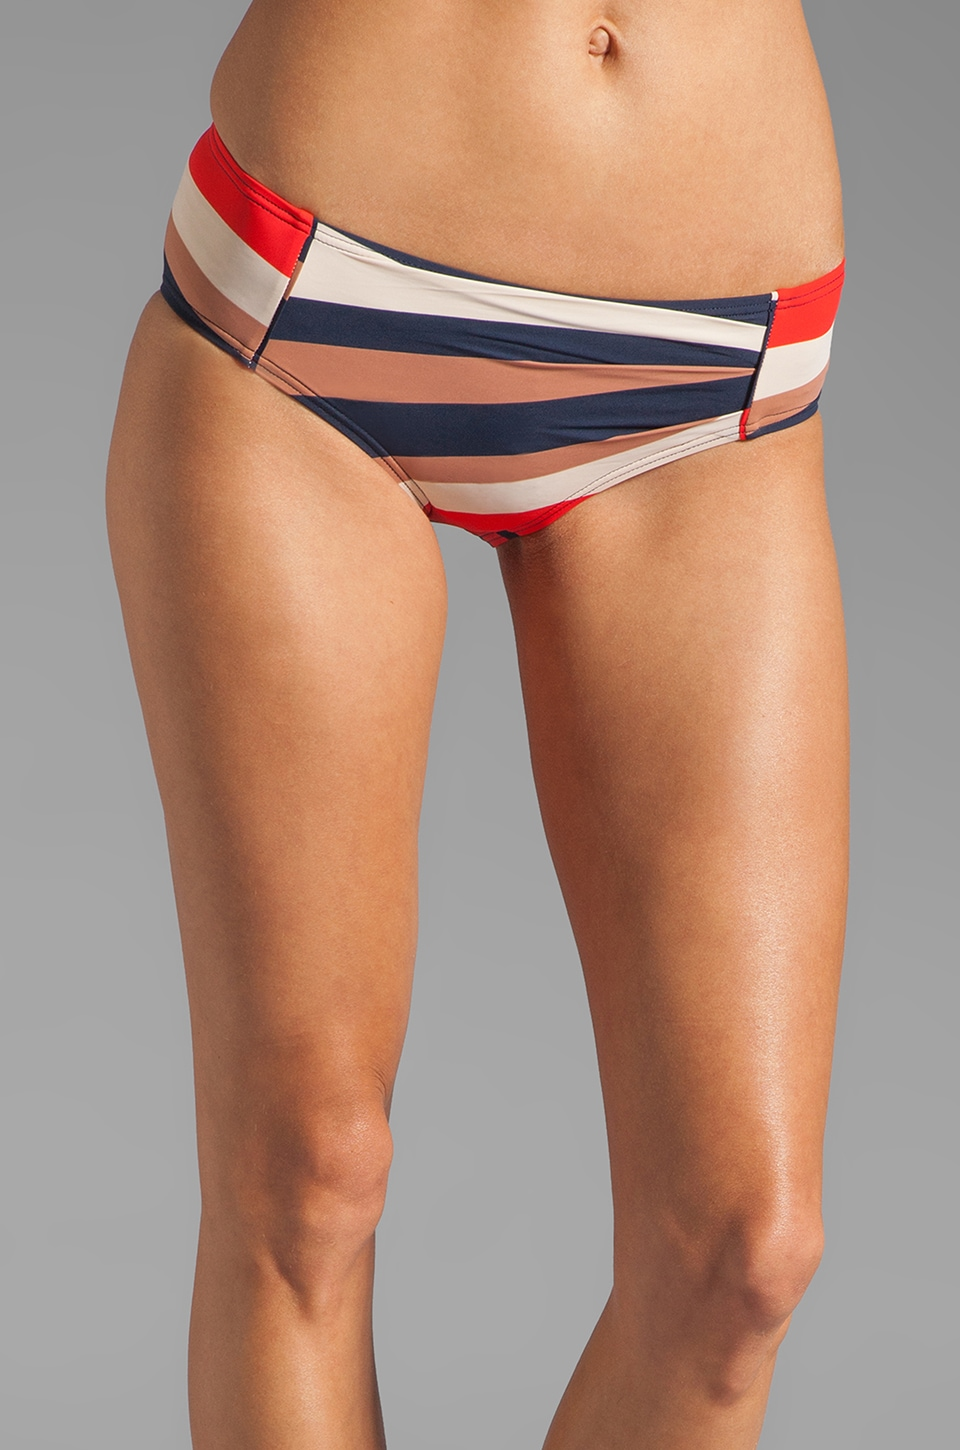 Marc by Marc Jacobs Vintage Stripe Pleated Hipster Bottom in Ink Blue